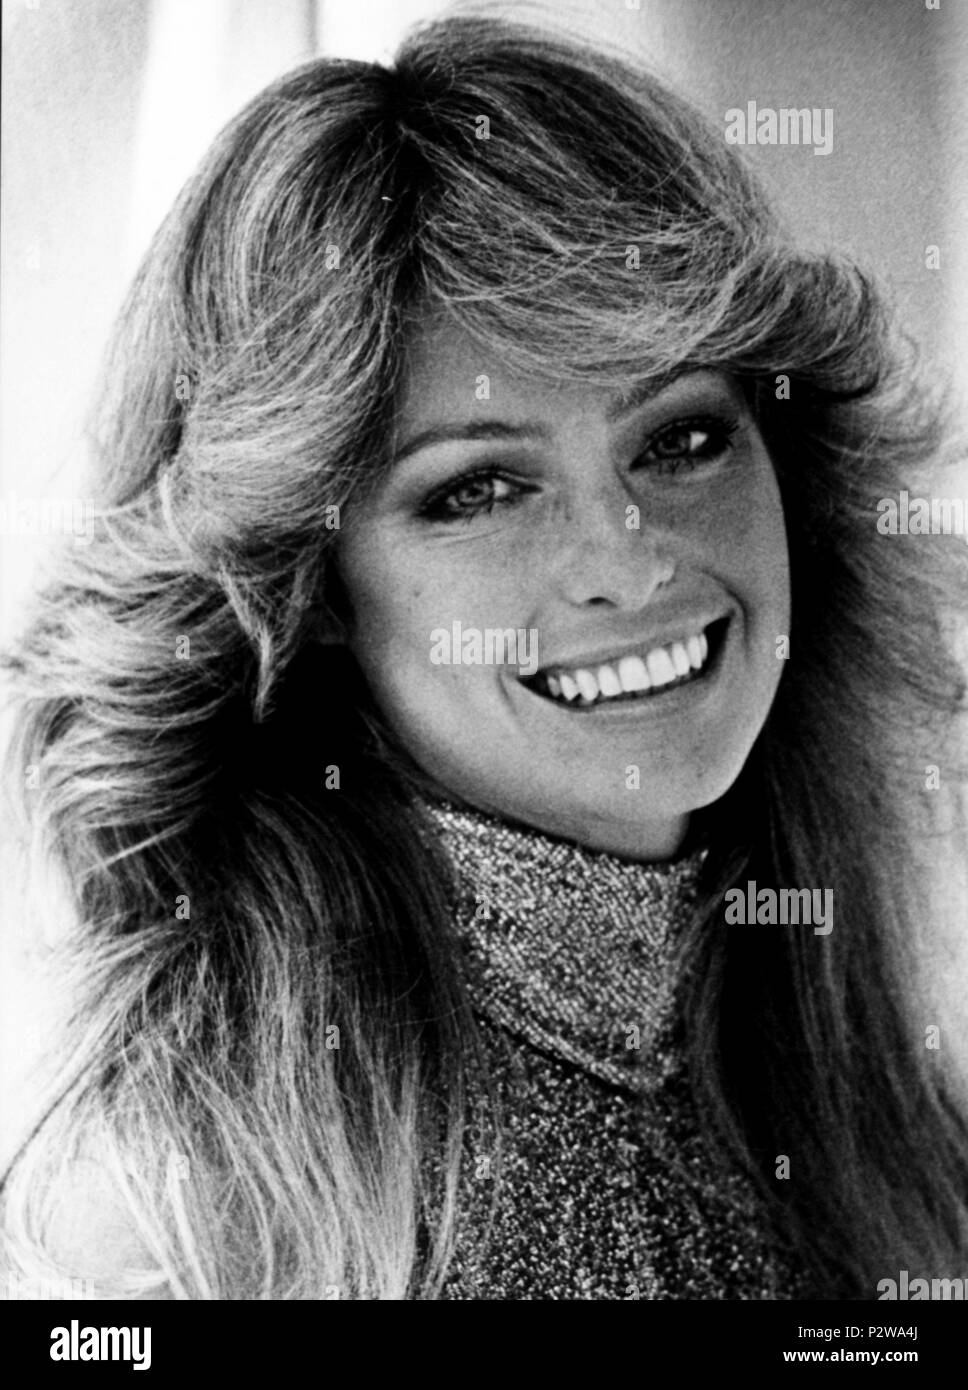 Stars: FARRAH FAWCETT Stock Photo: 208310498 - Alamy